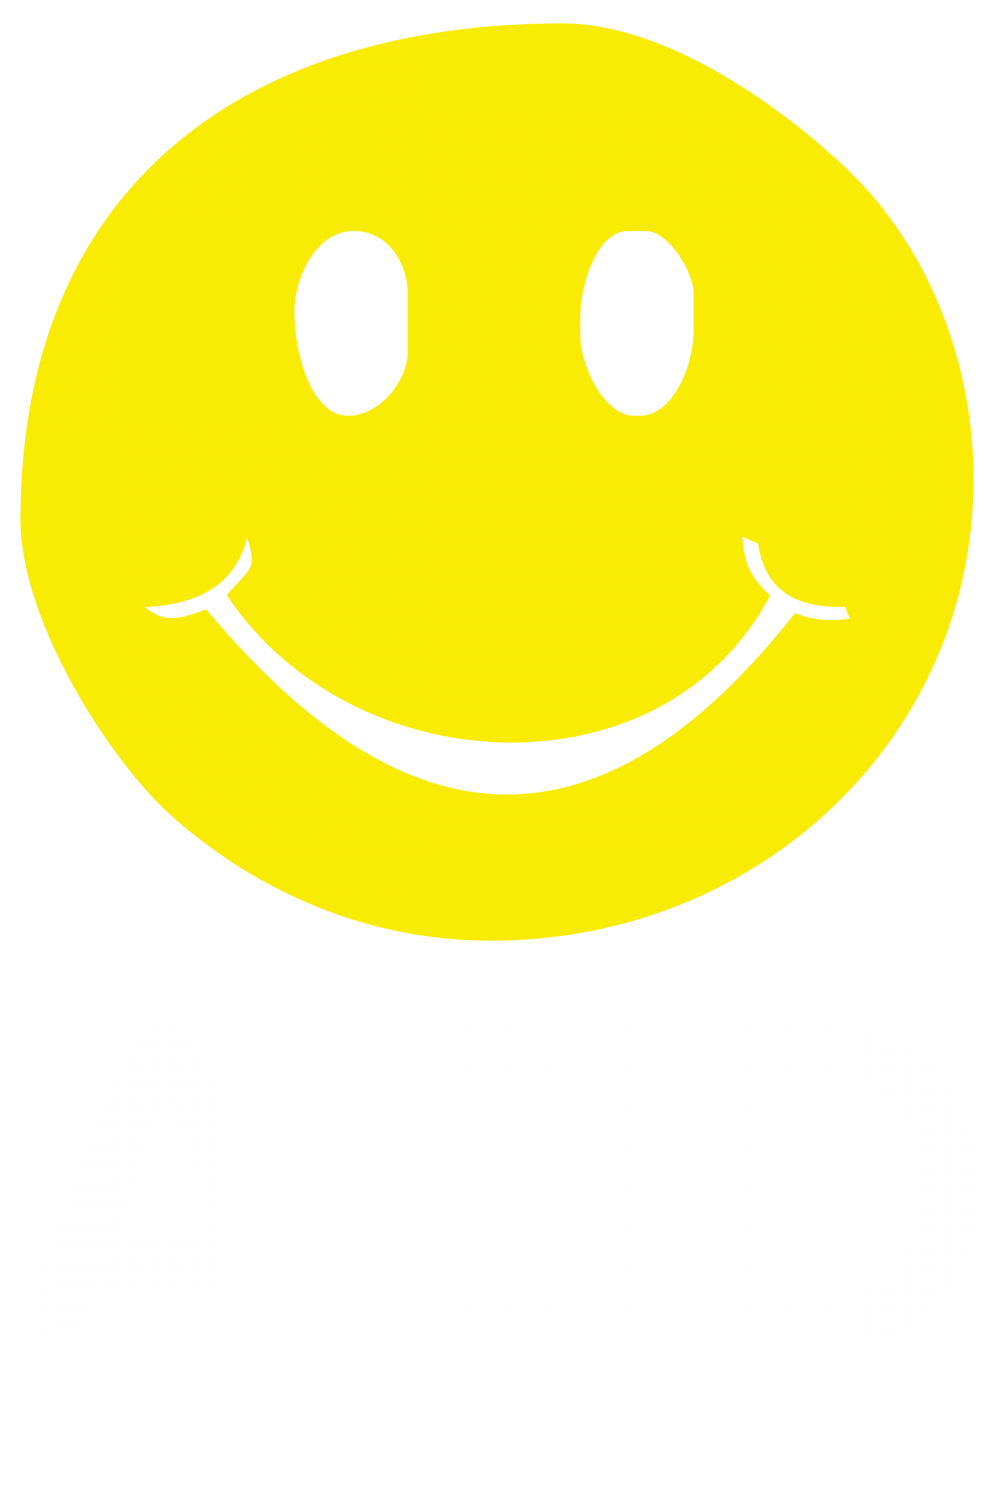 90s rave smiley face png. Custom acid house s